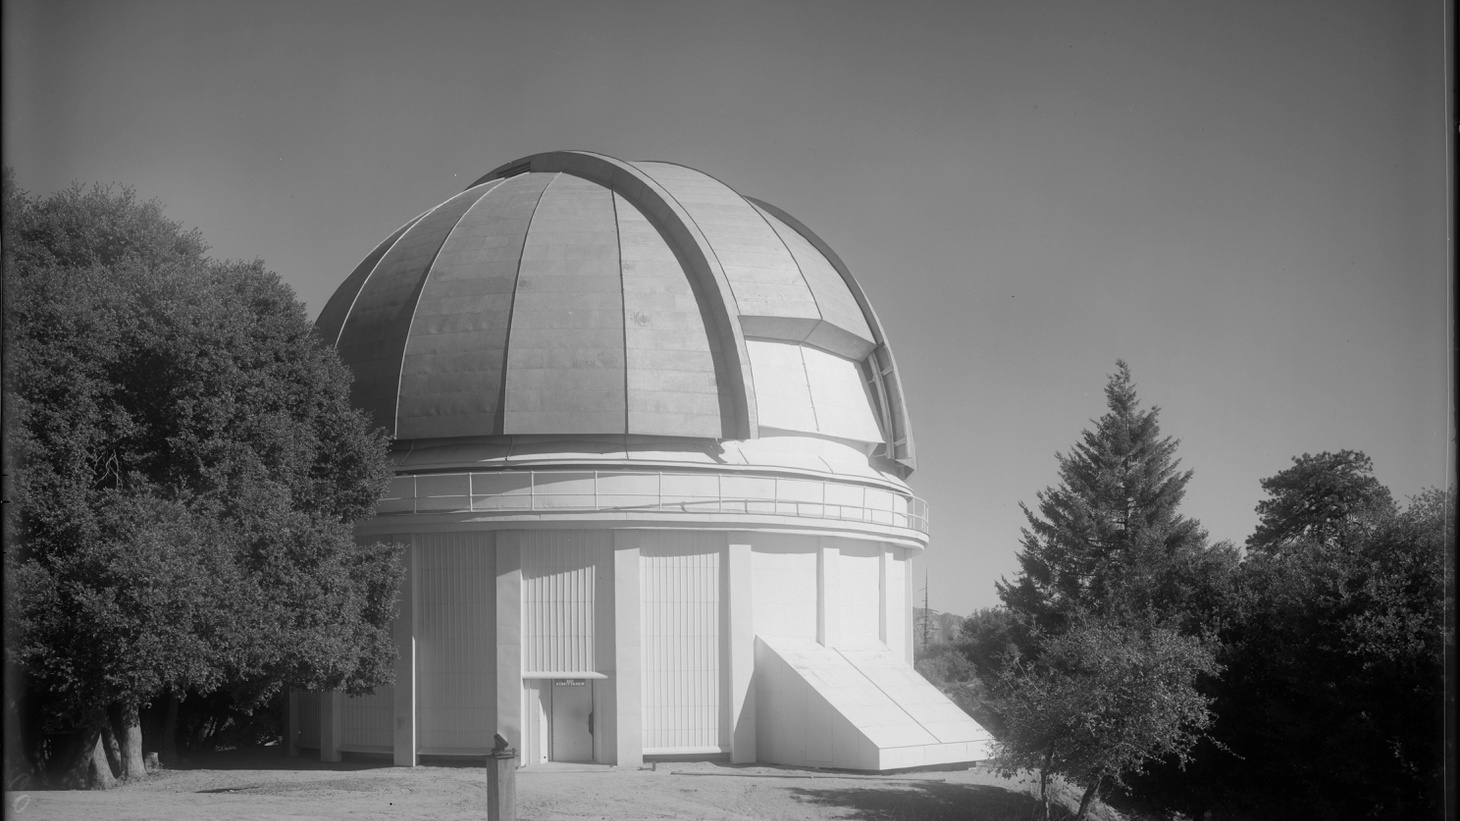 The home dome of the 60-inch telescope has stayed the same since 1914.